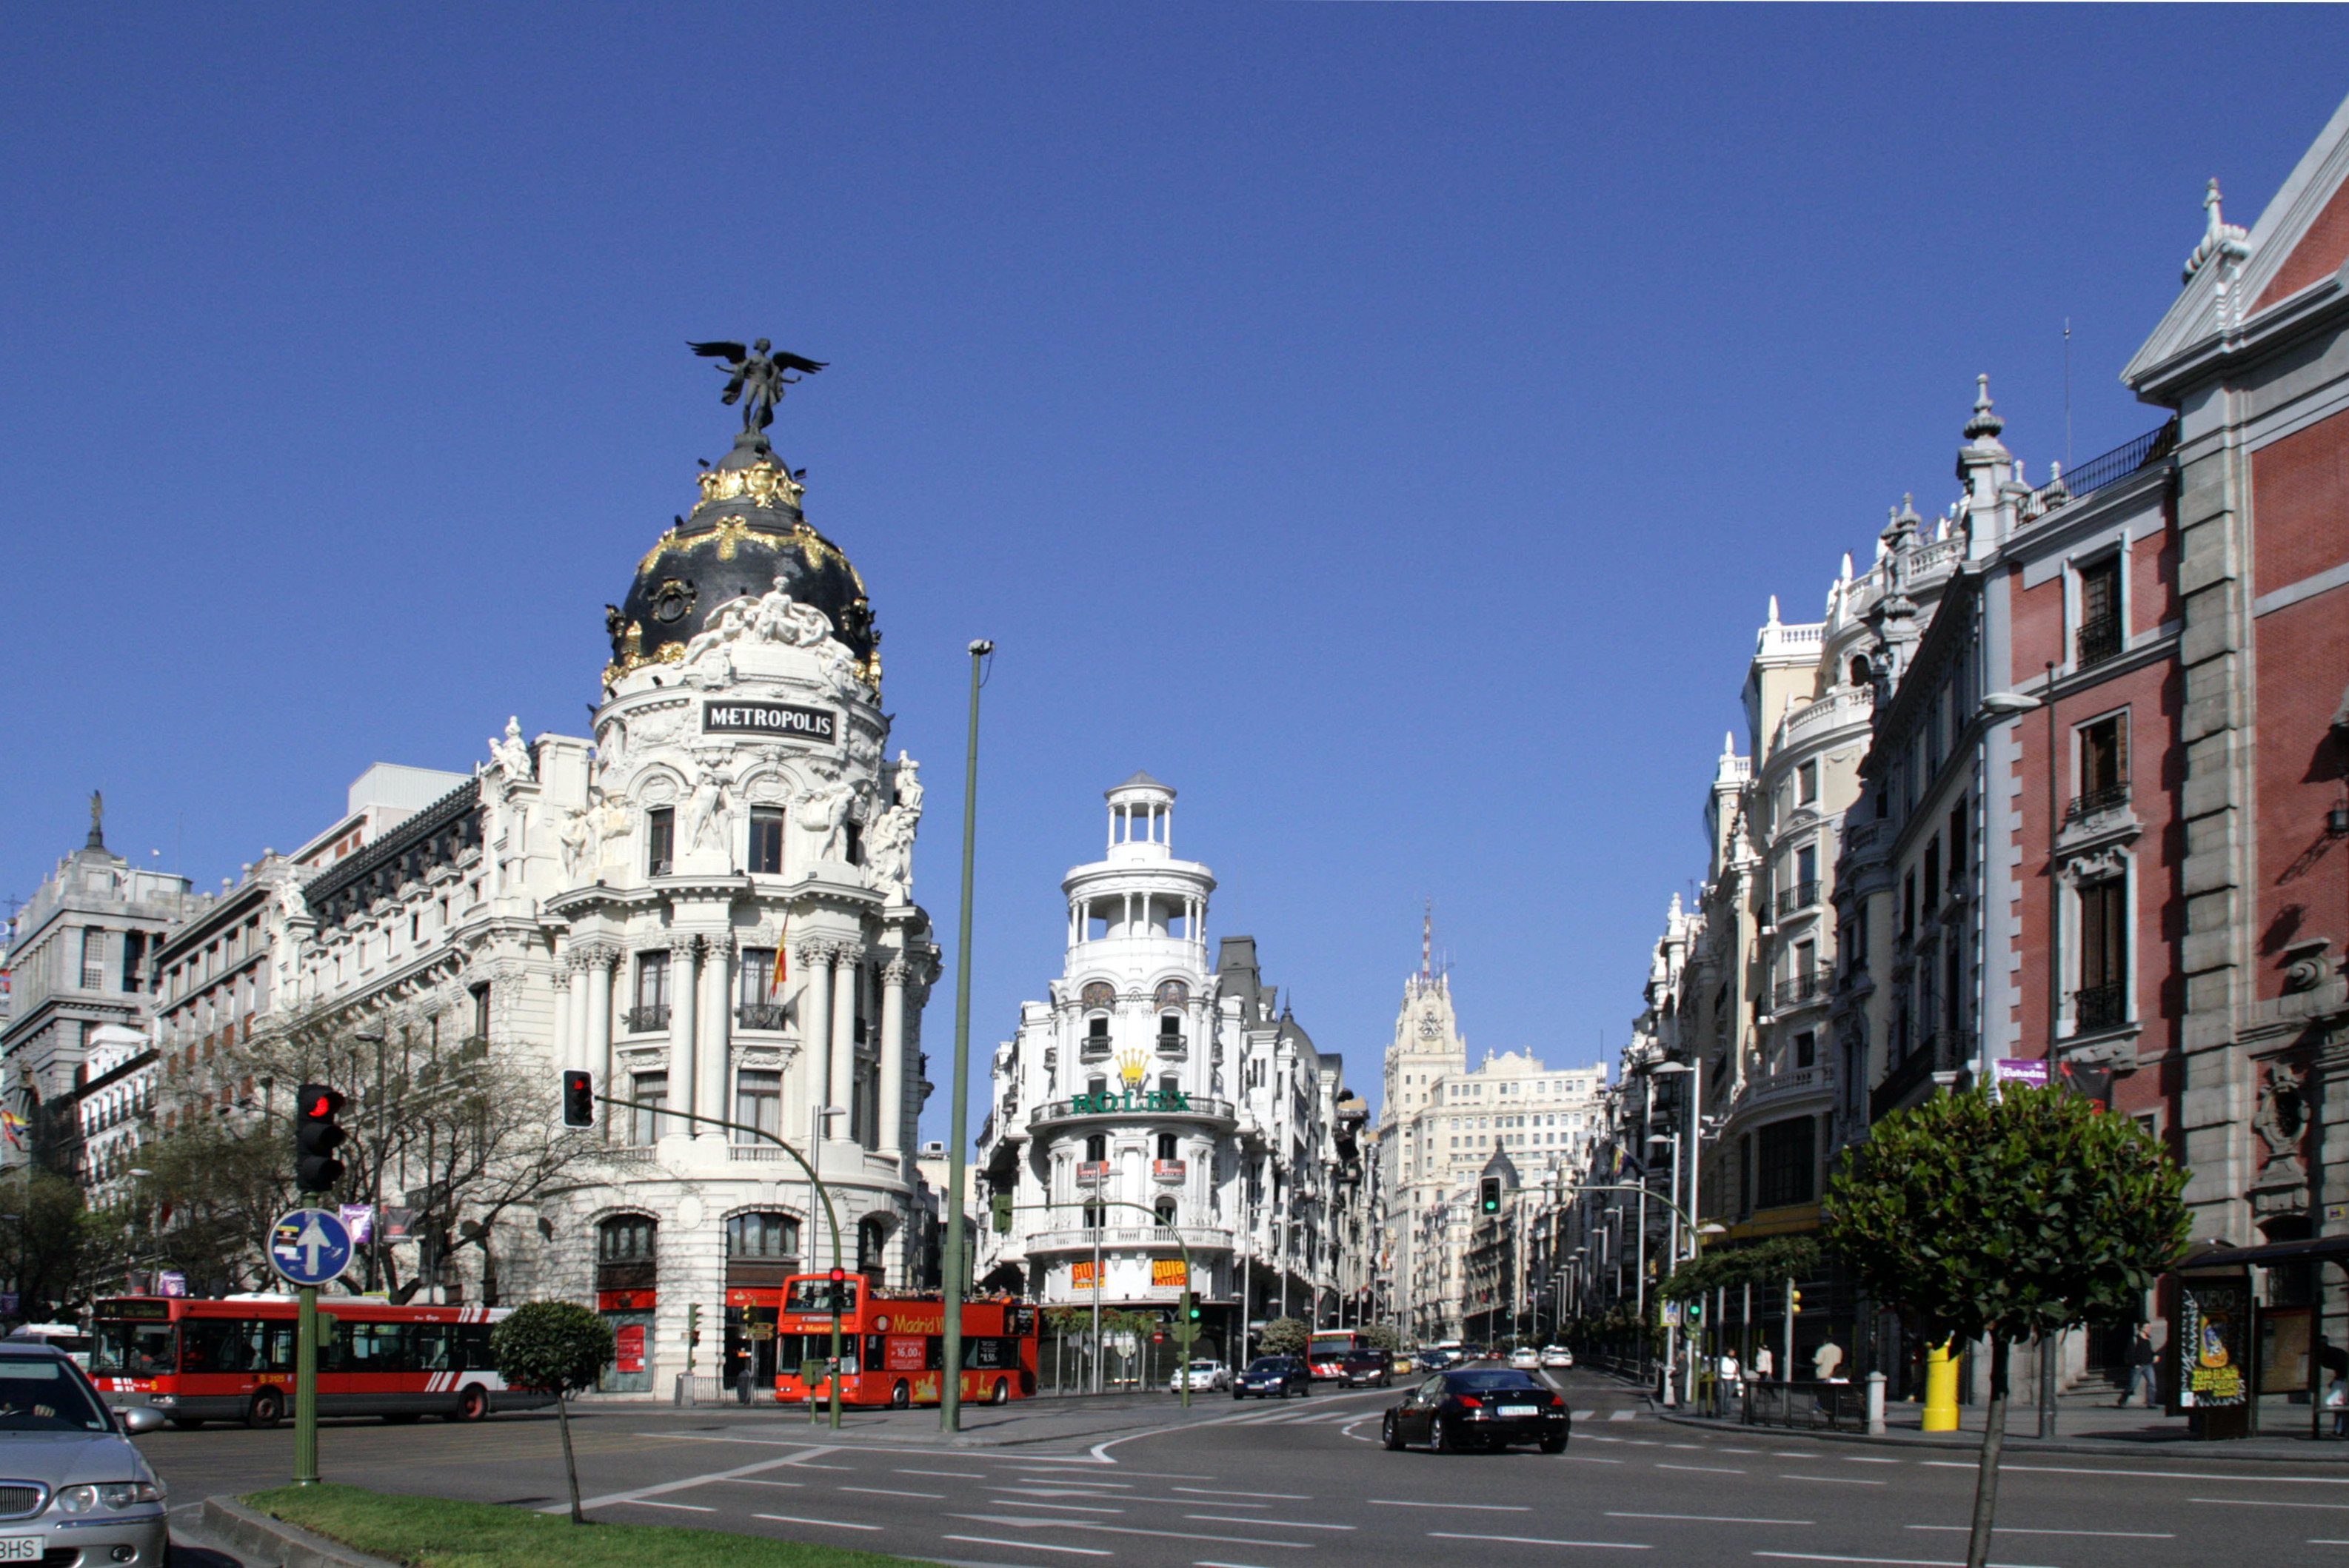 Madrid leading edge architecture and style